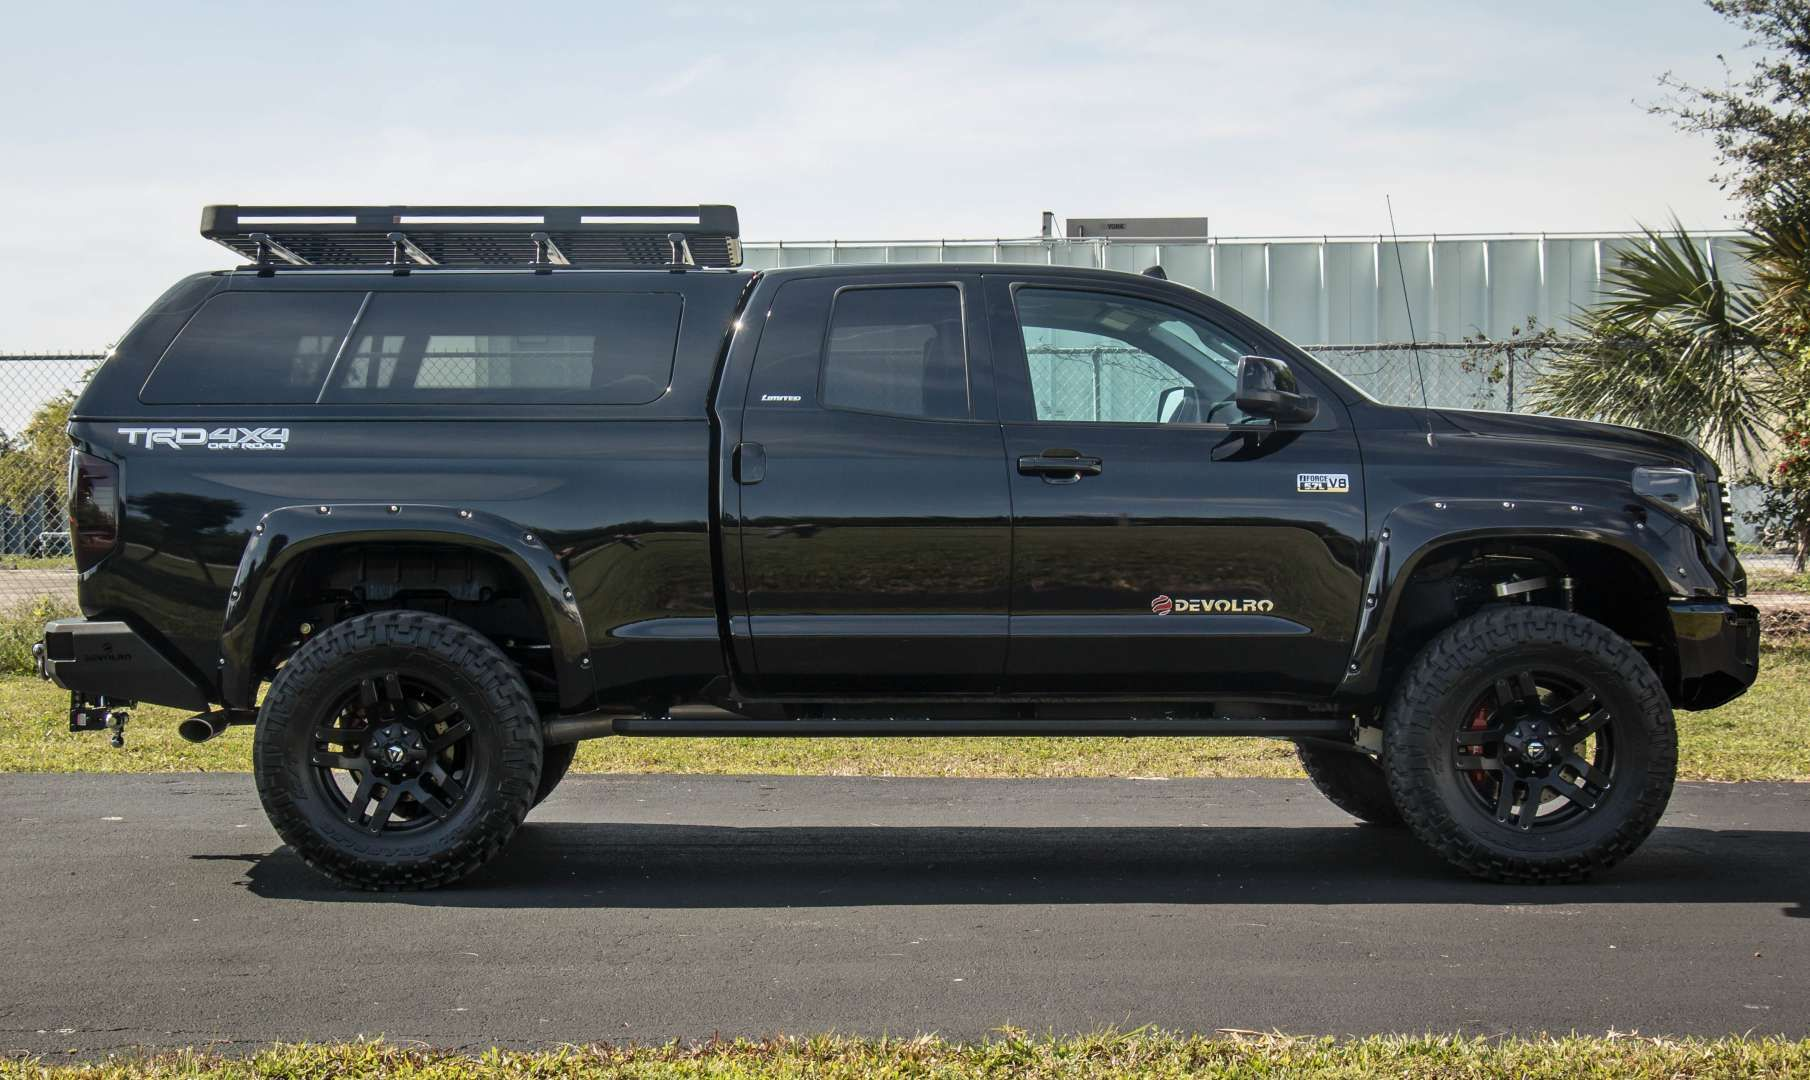 A military grade hunting truck